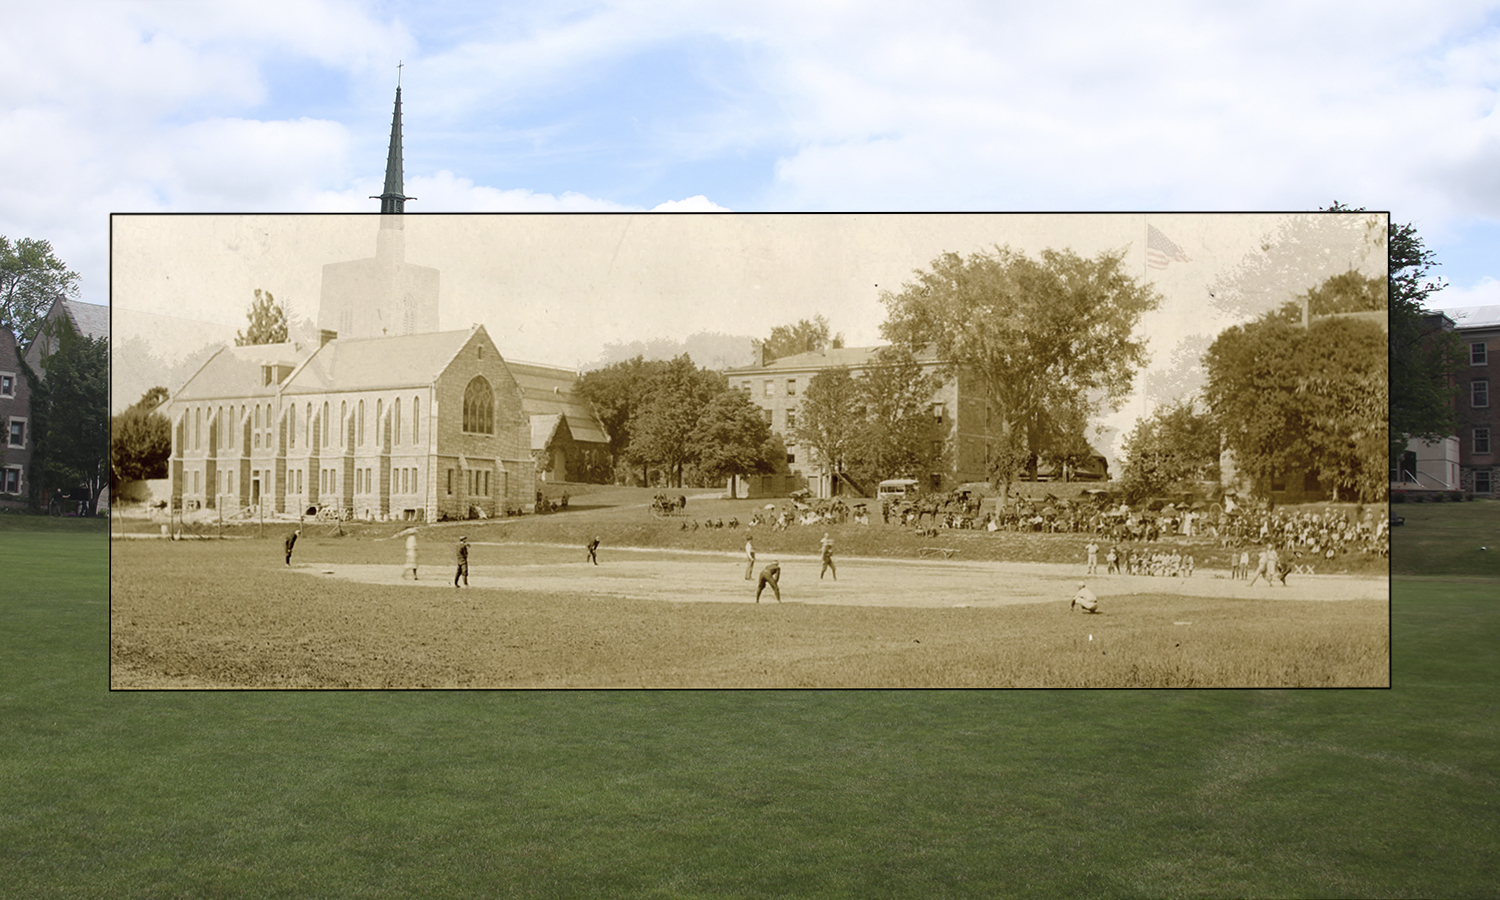 The Hobart baseball team plays on the Quad in 1895.